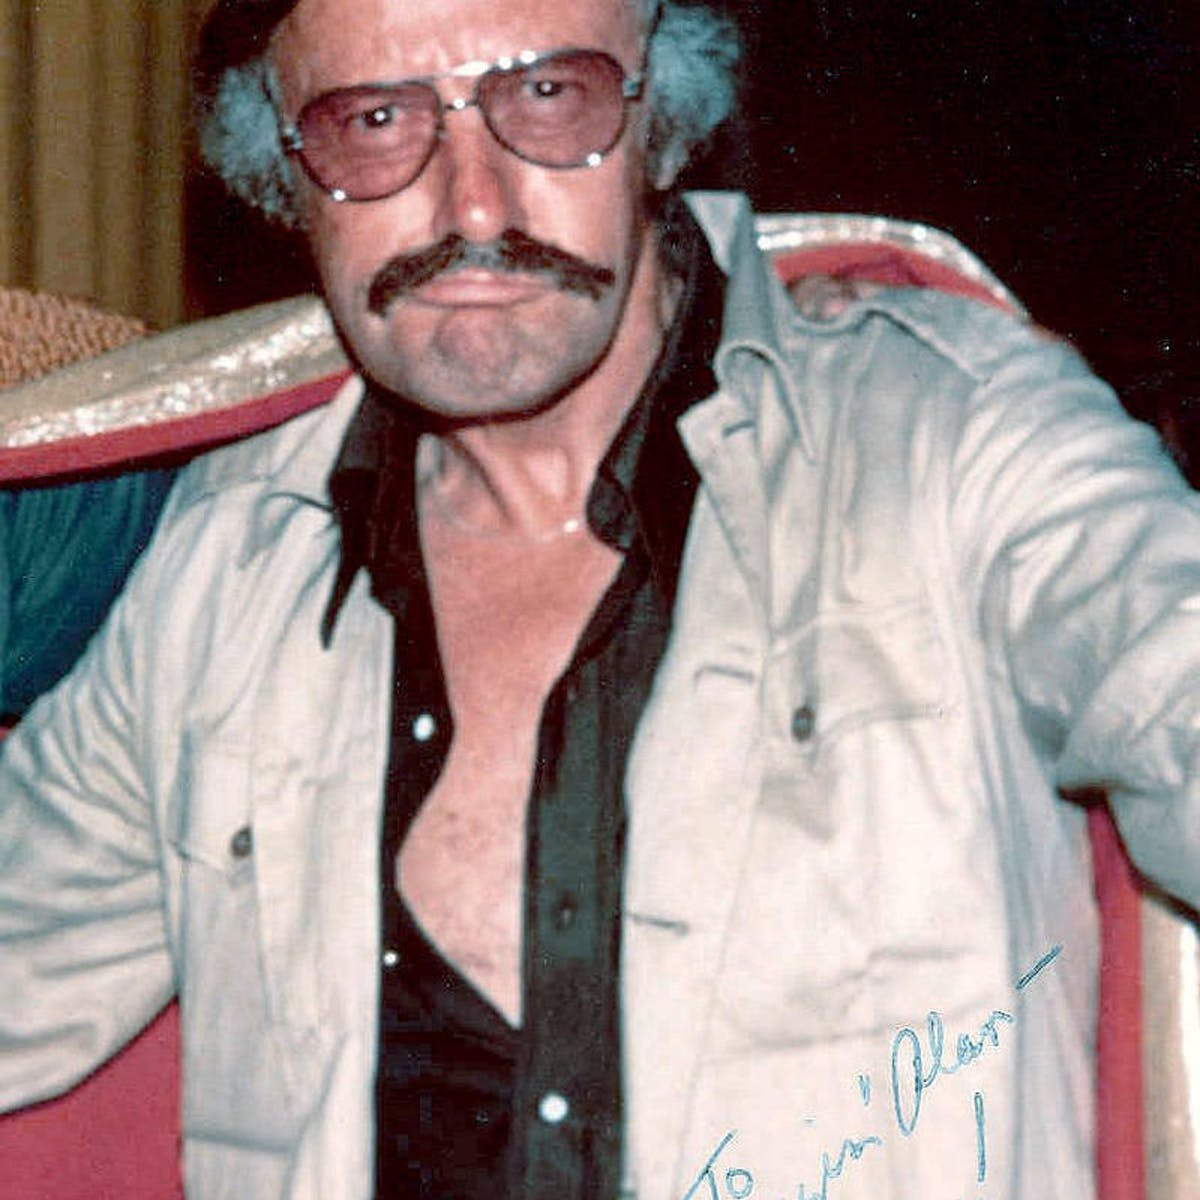 A Stan Lee Biopic Movie Was Confirmed in 2016, So What Ever Happened to It?